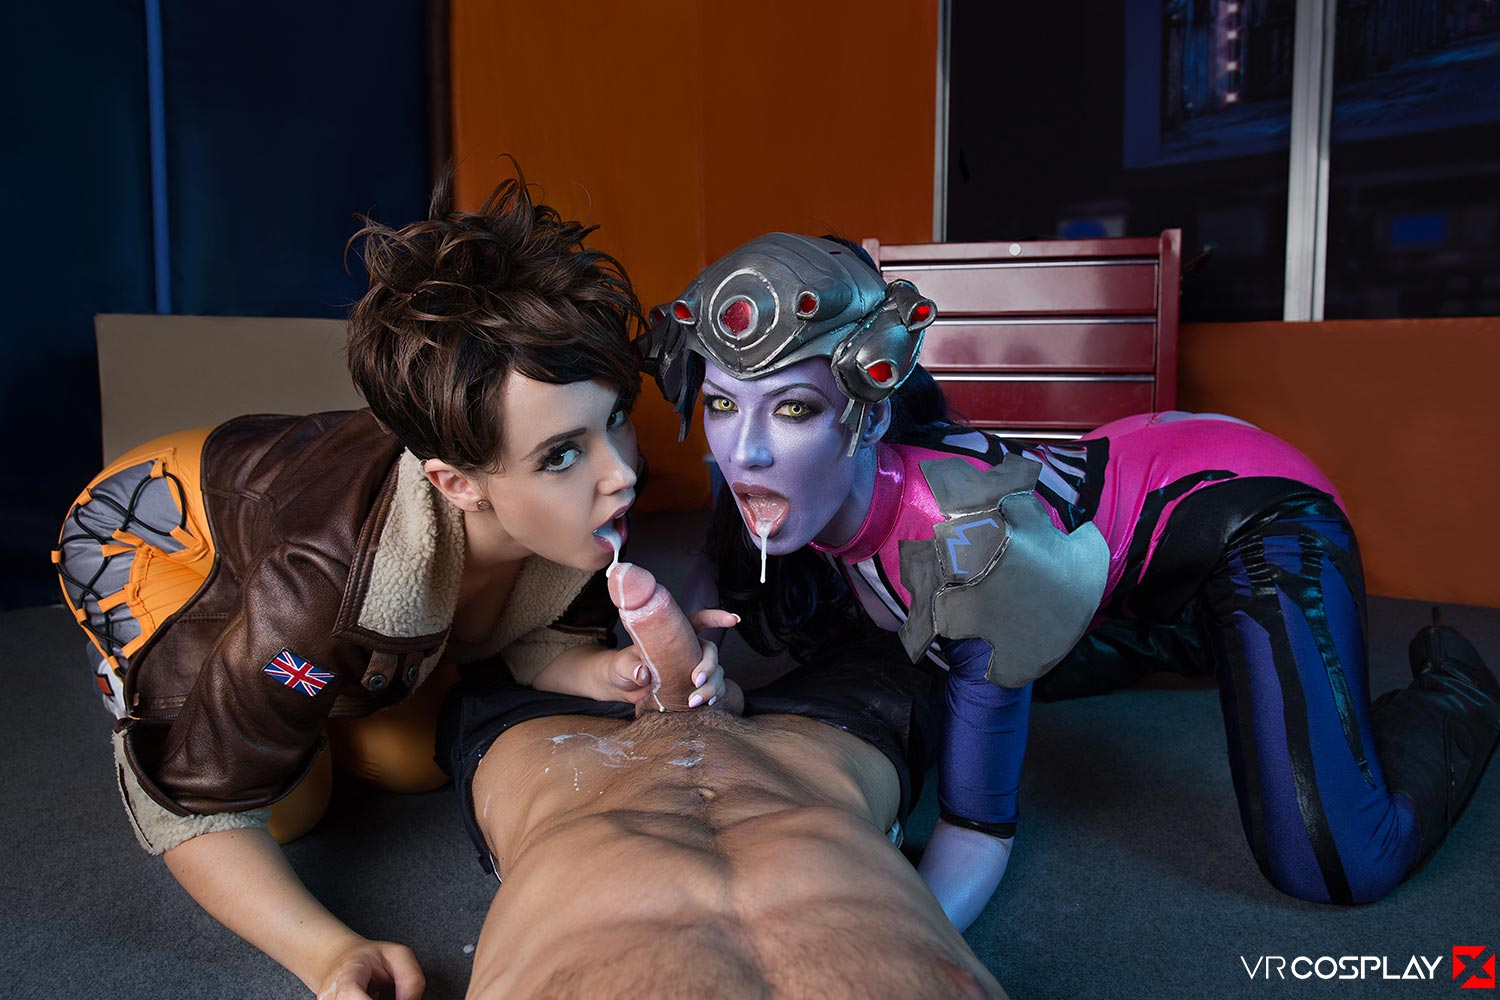 Overwatch cosplay porn